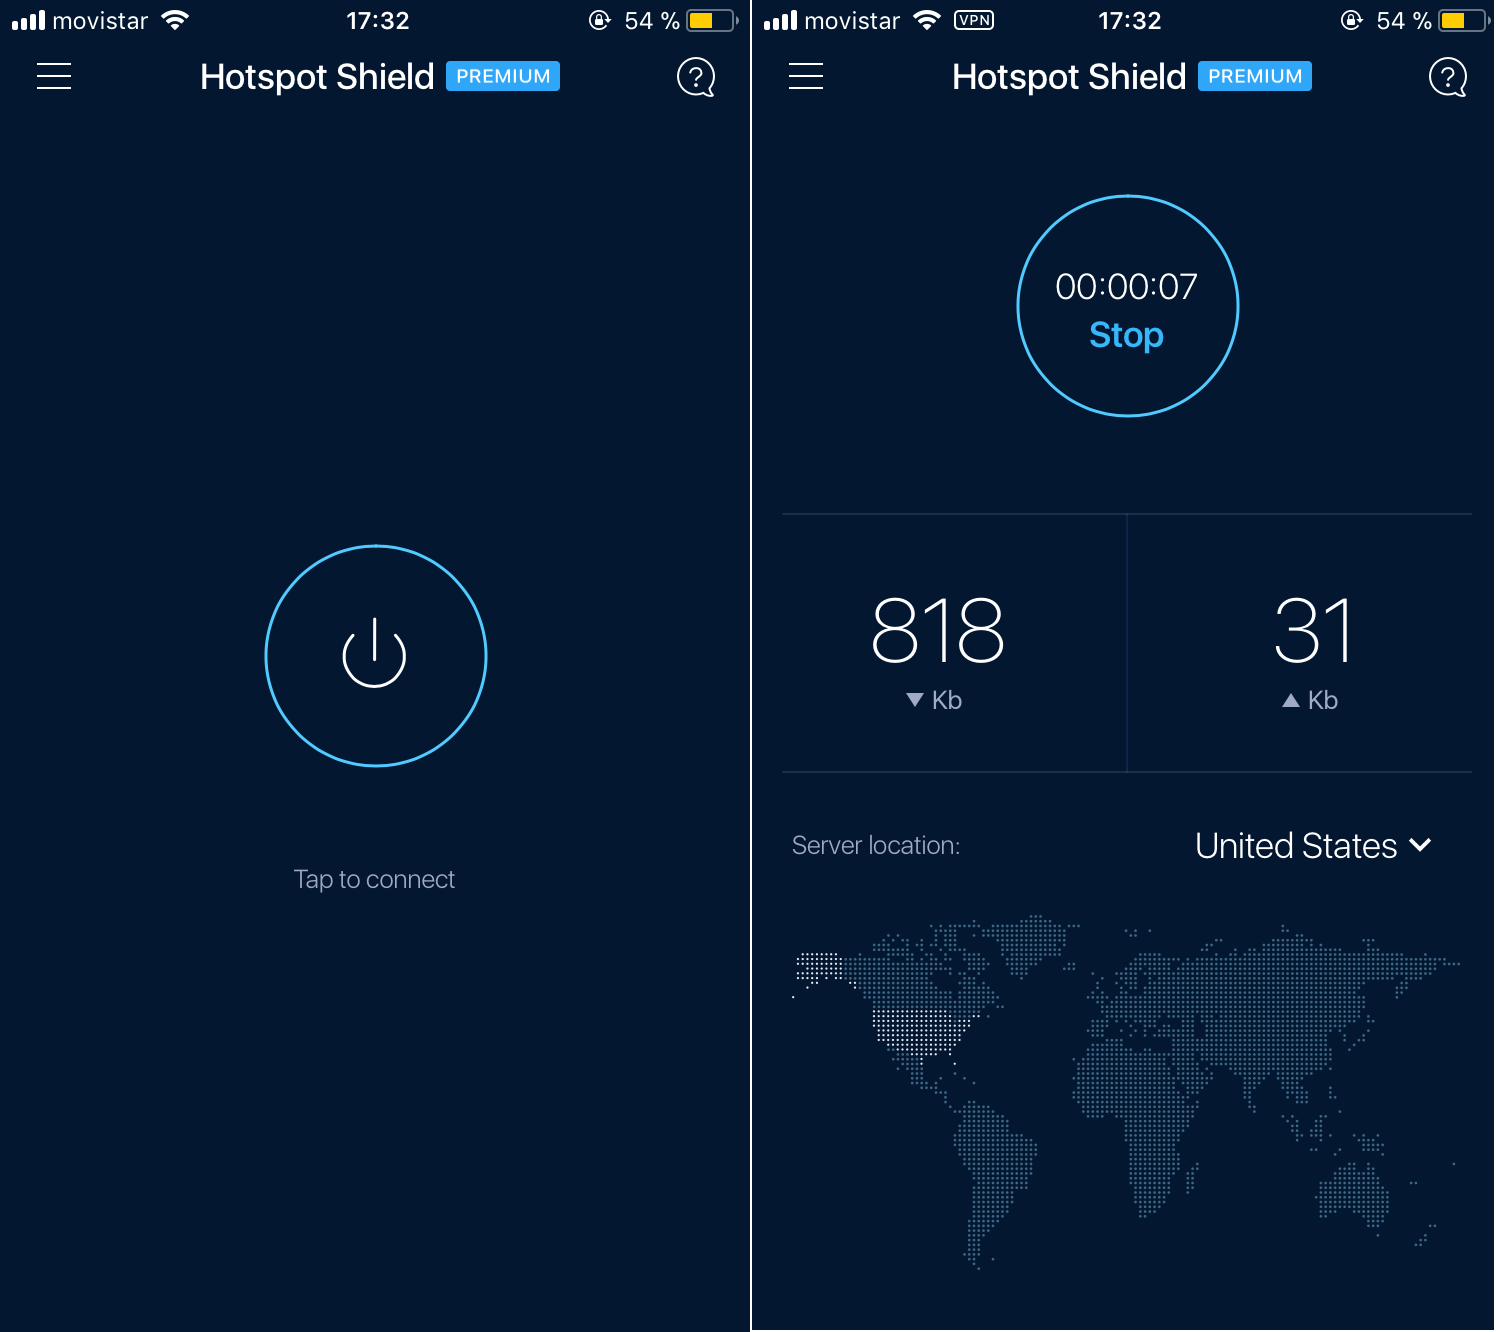 descargar hotspot shield vpn gratis para iphone free elite full